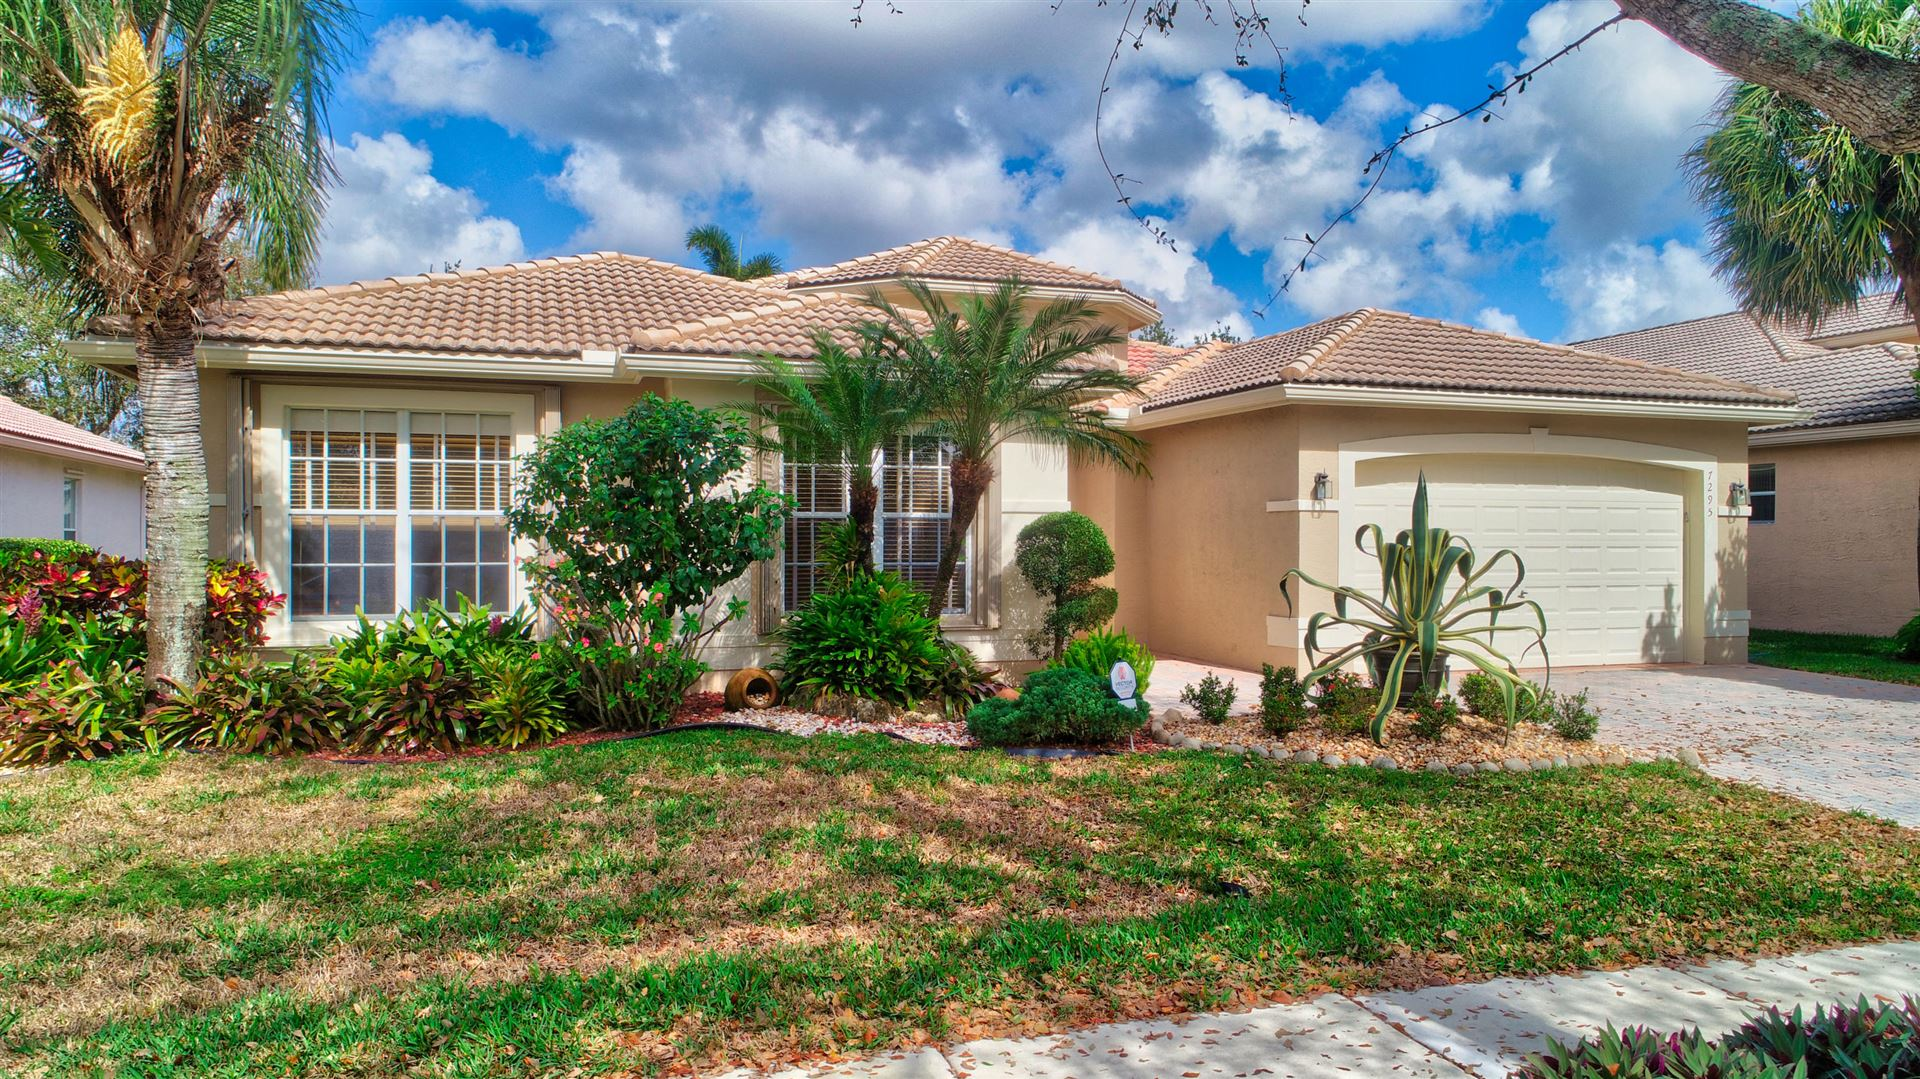 Photo of 7295 Lahana Circle, Boynton Beach, FL 33437 (MLS # RX-10687875)